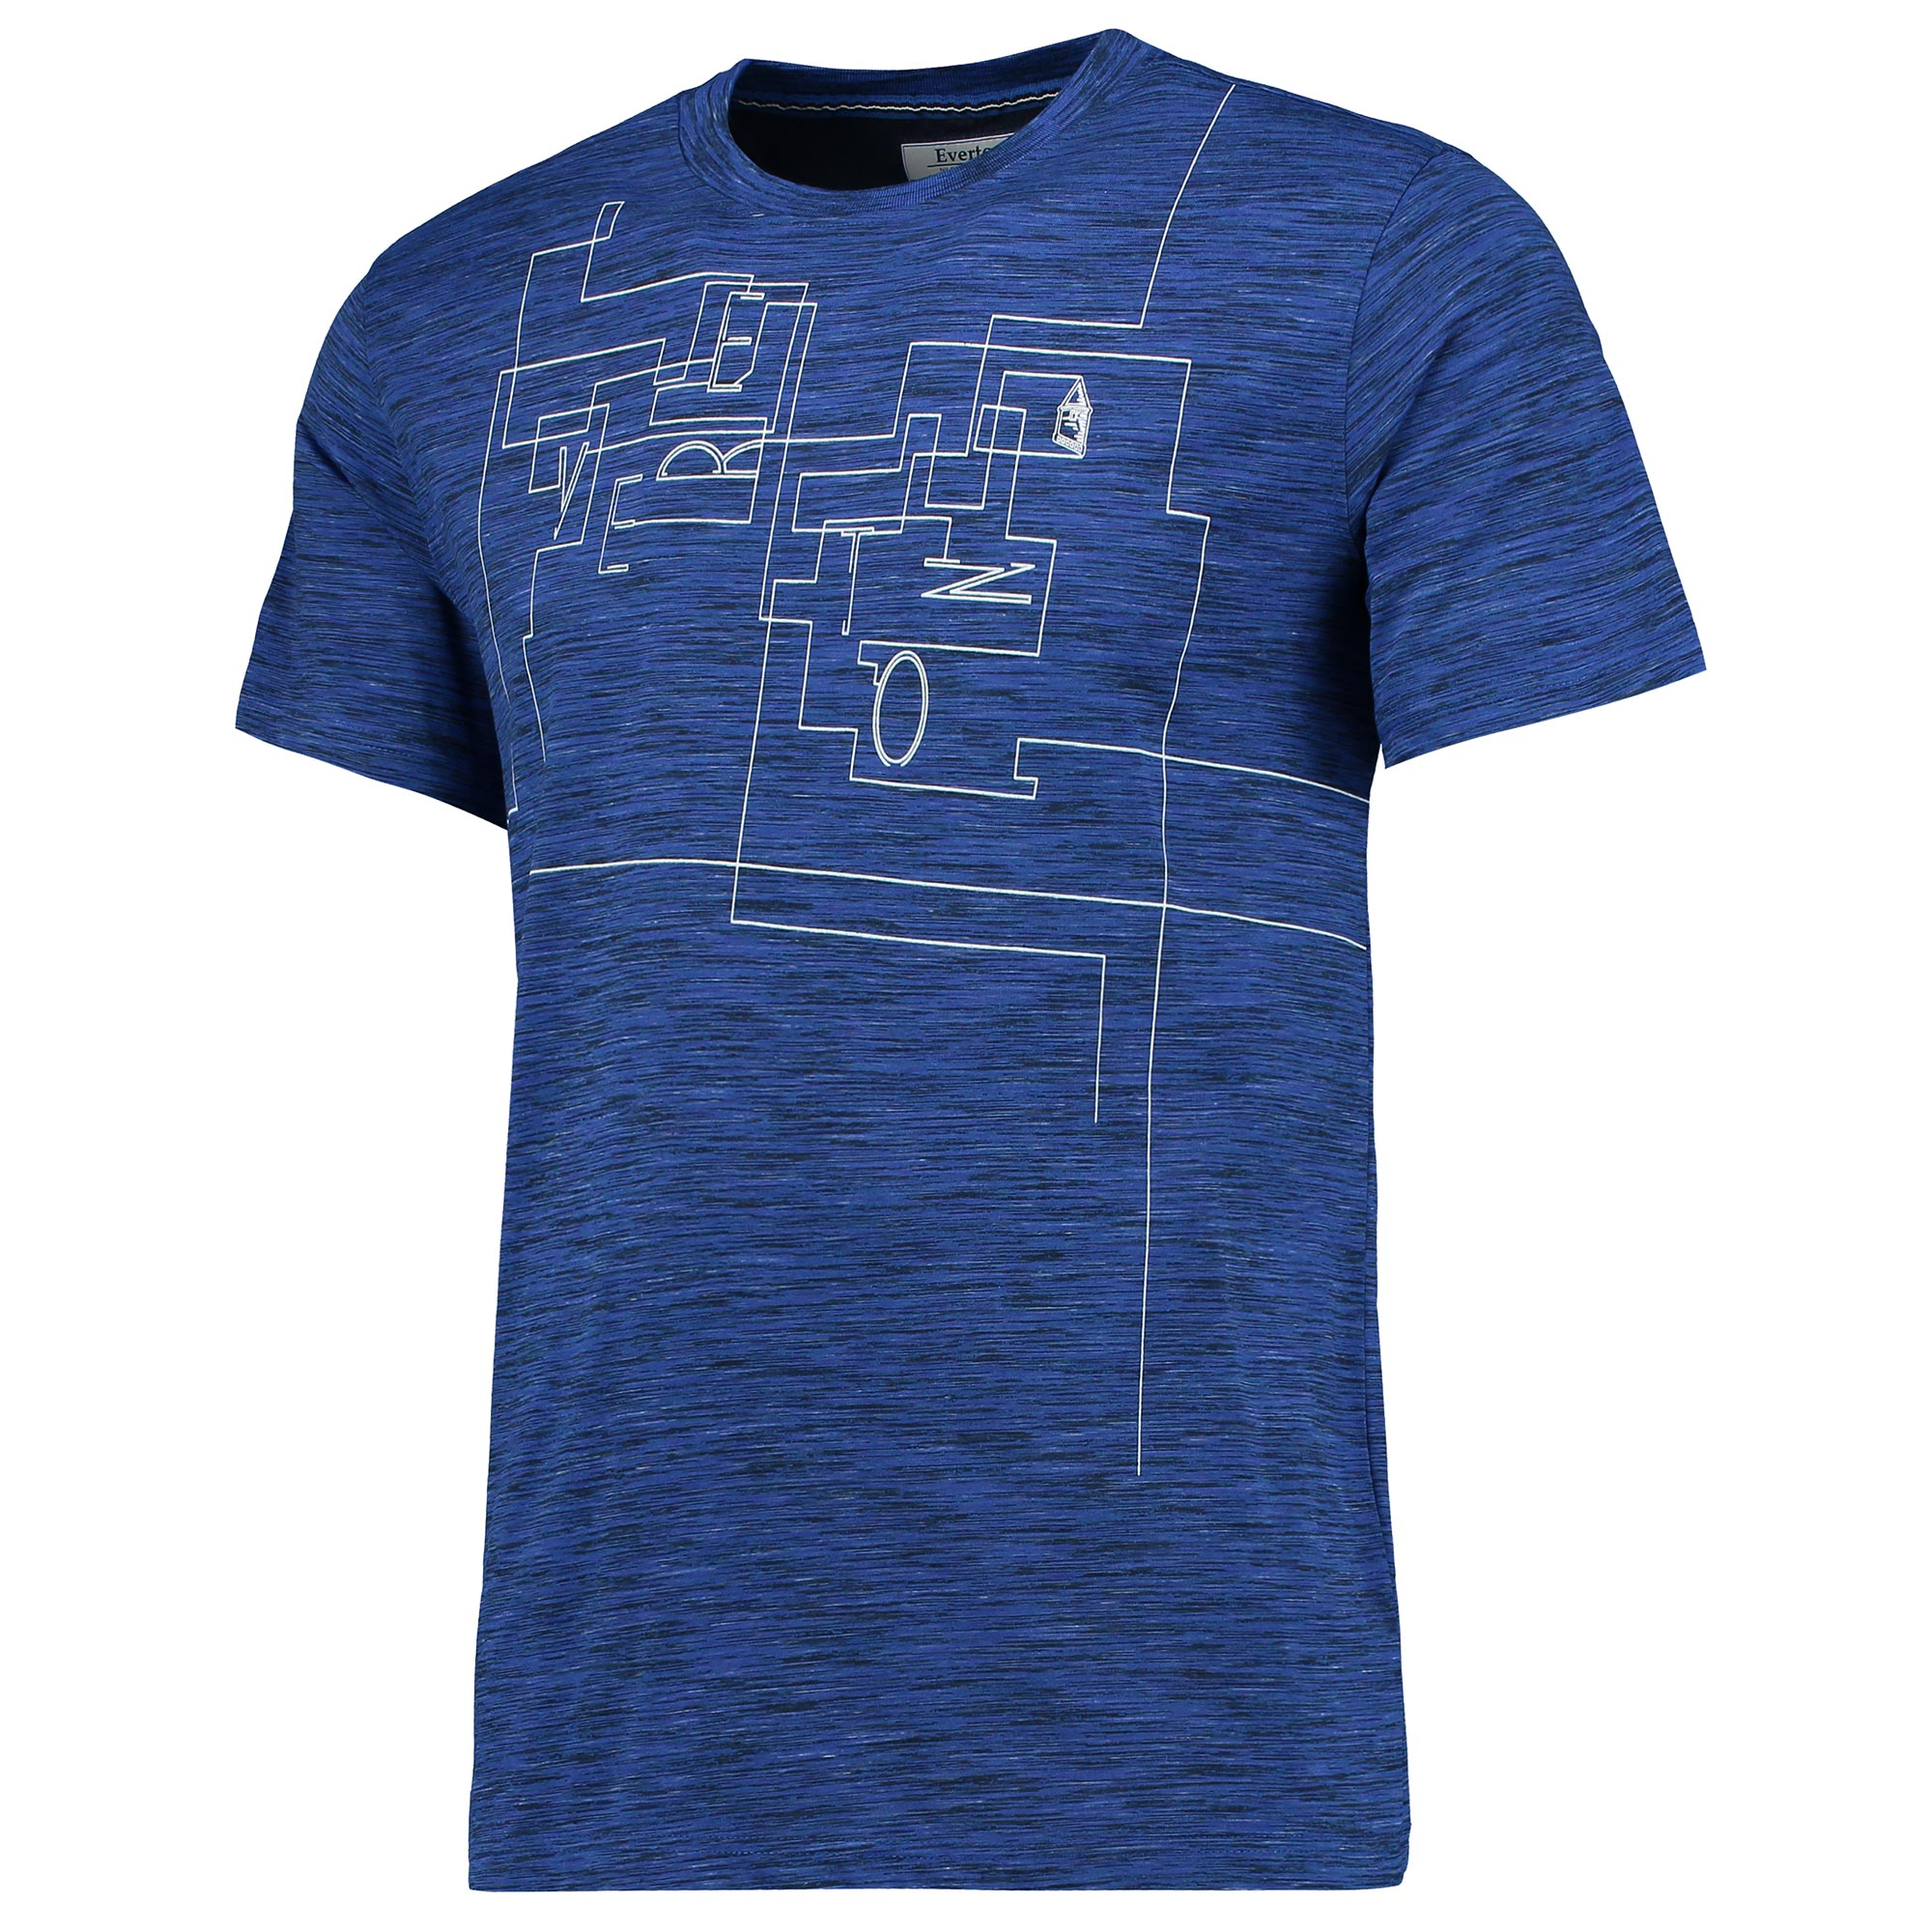 Everton Terrace T-Shirt - Navy